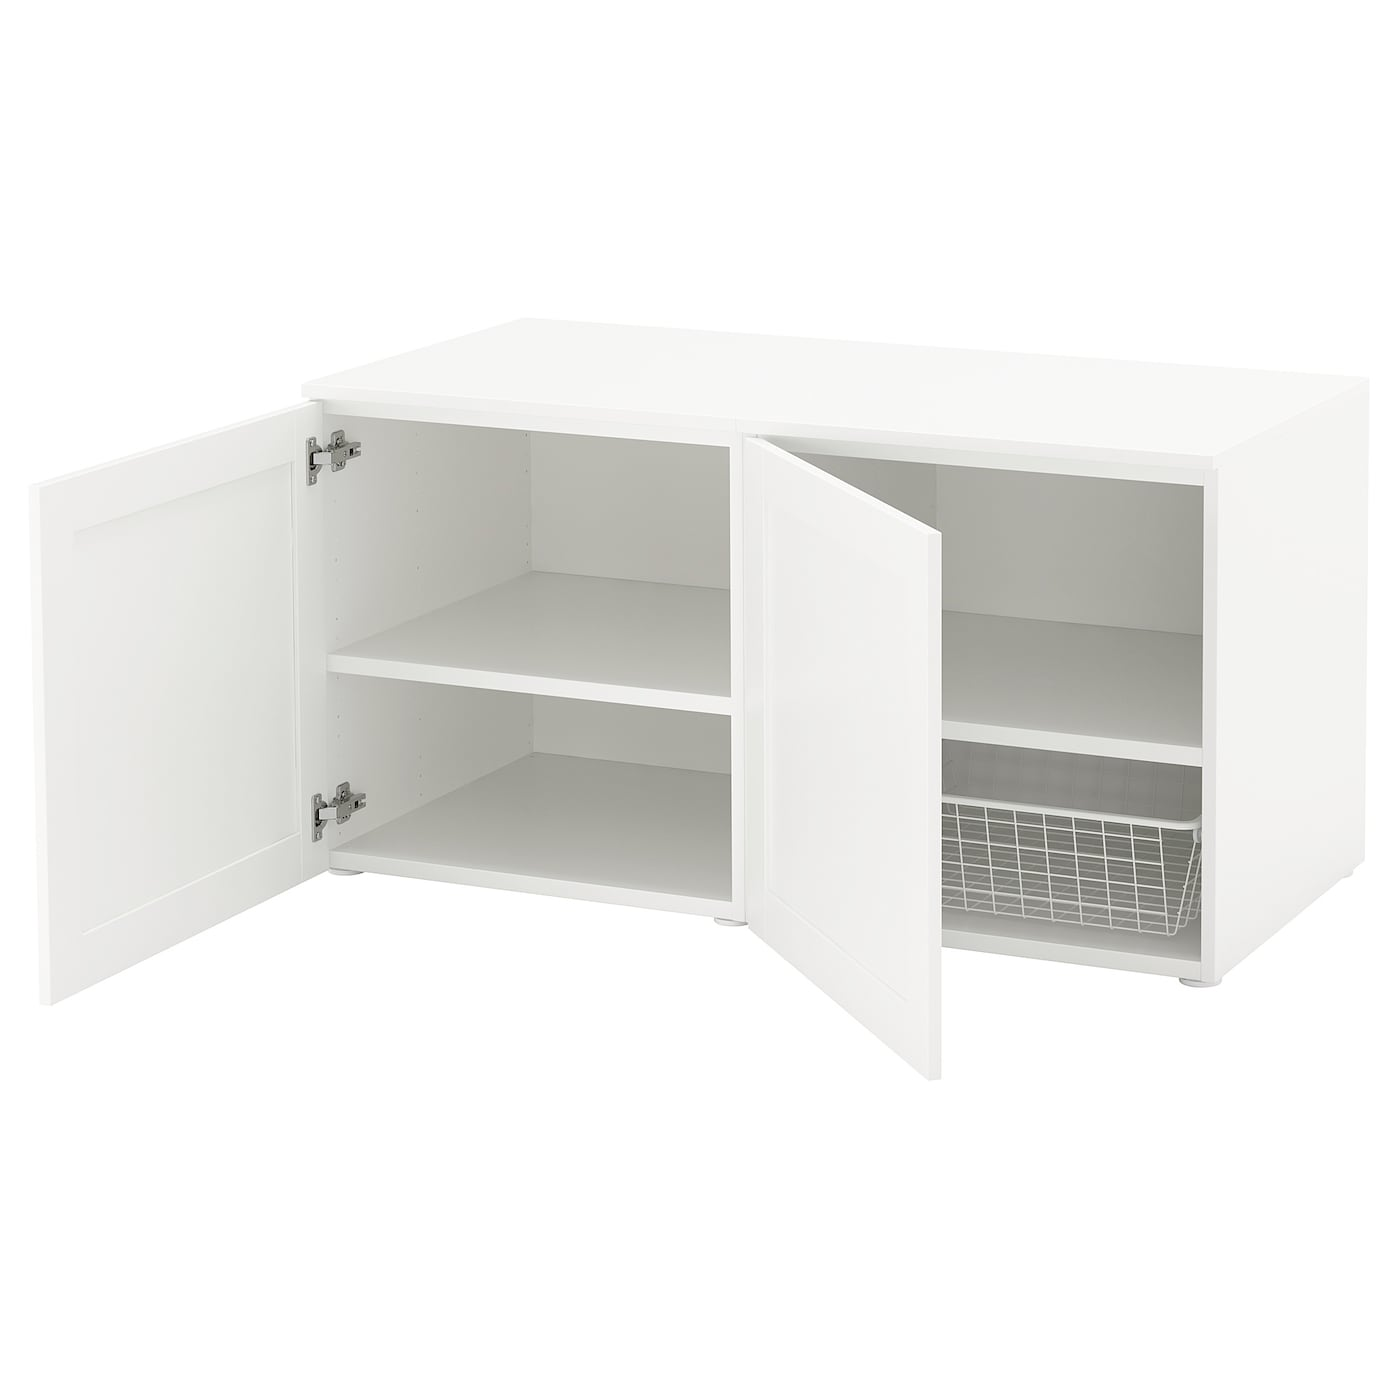 platsa banc avec rangement blanc sannidal blanc 120 x 57 x 63 cm ikea. Black Bedroom Furniture Sets. Home Design Ideas